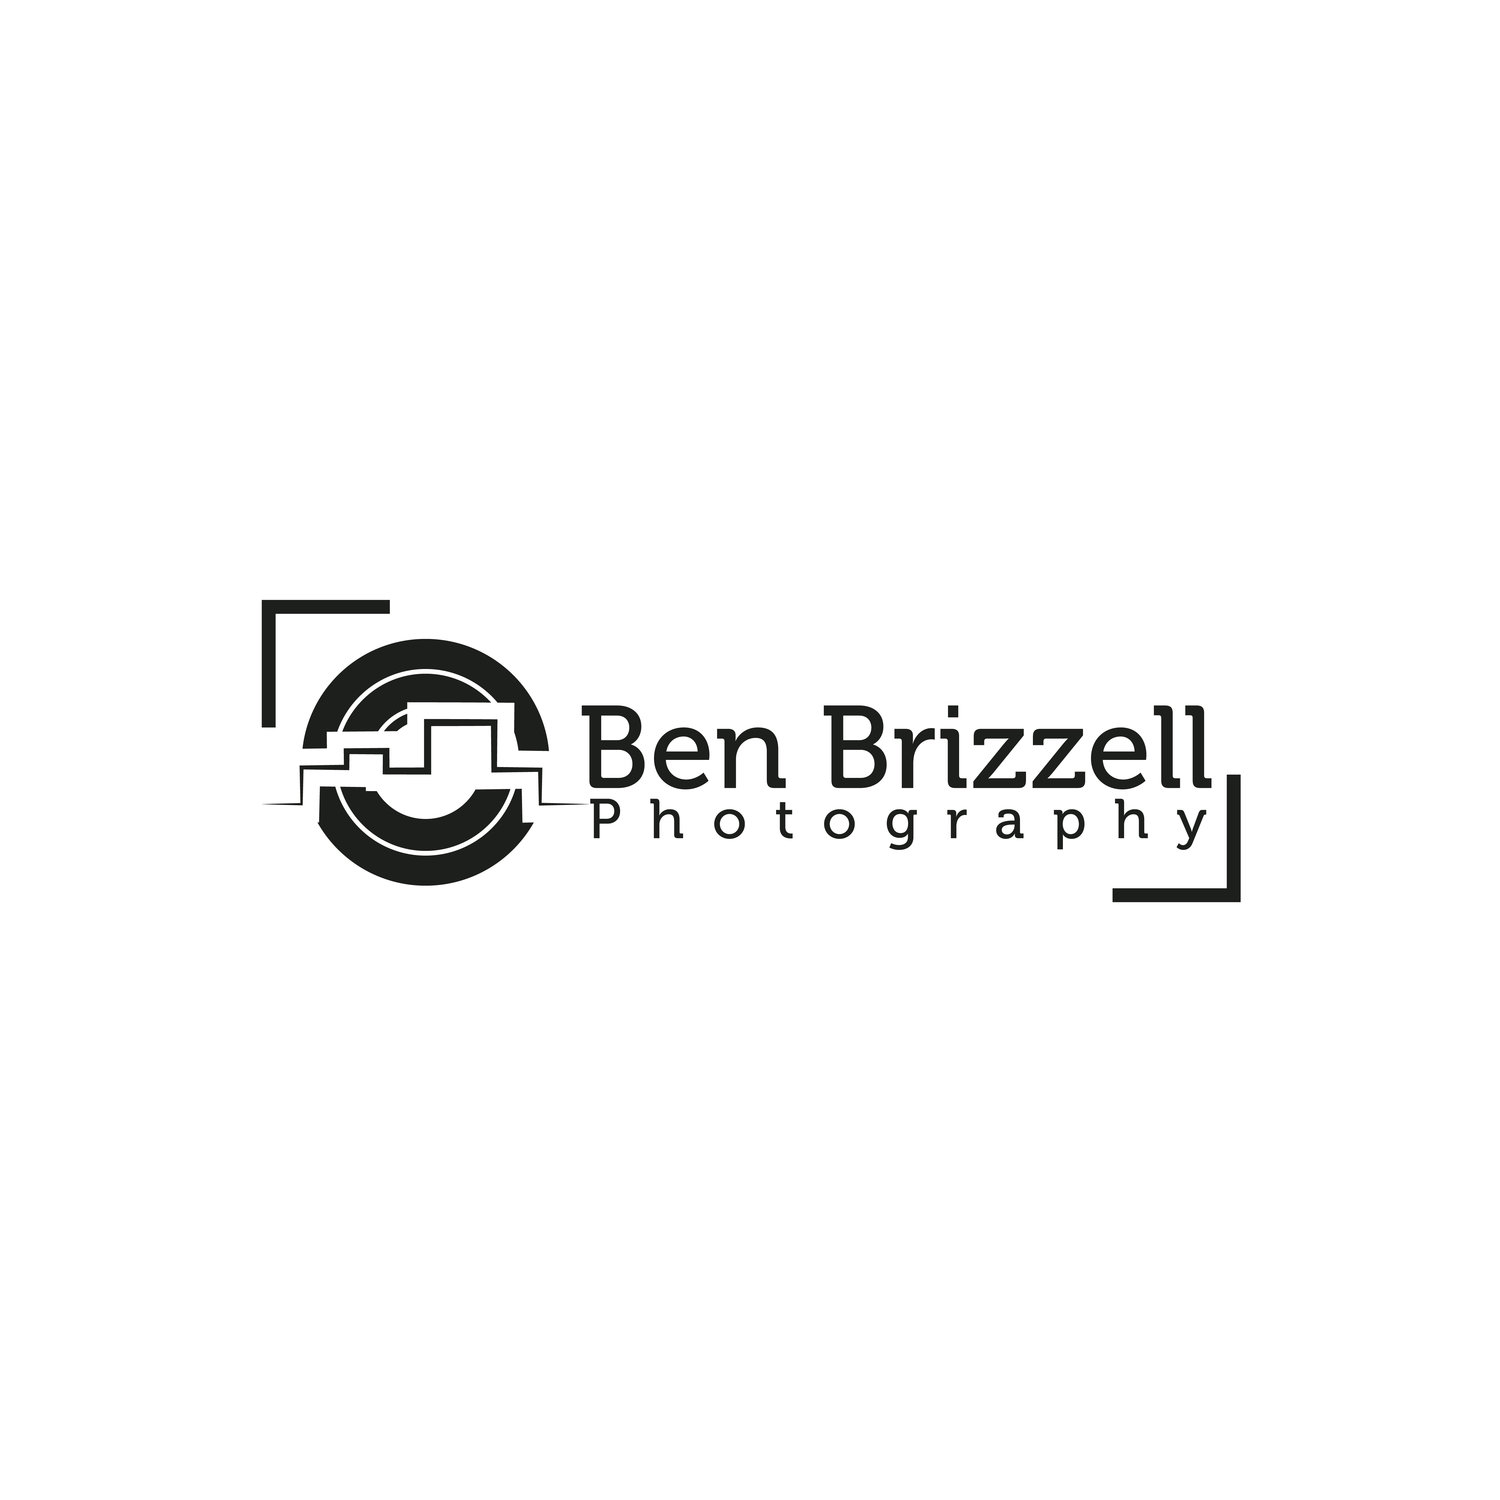 Ben Brizzell Photography